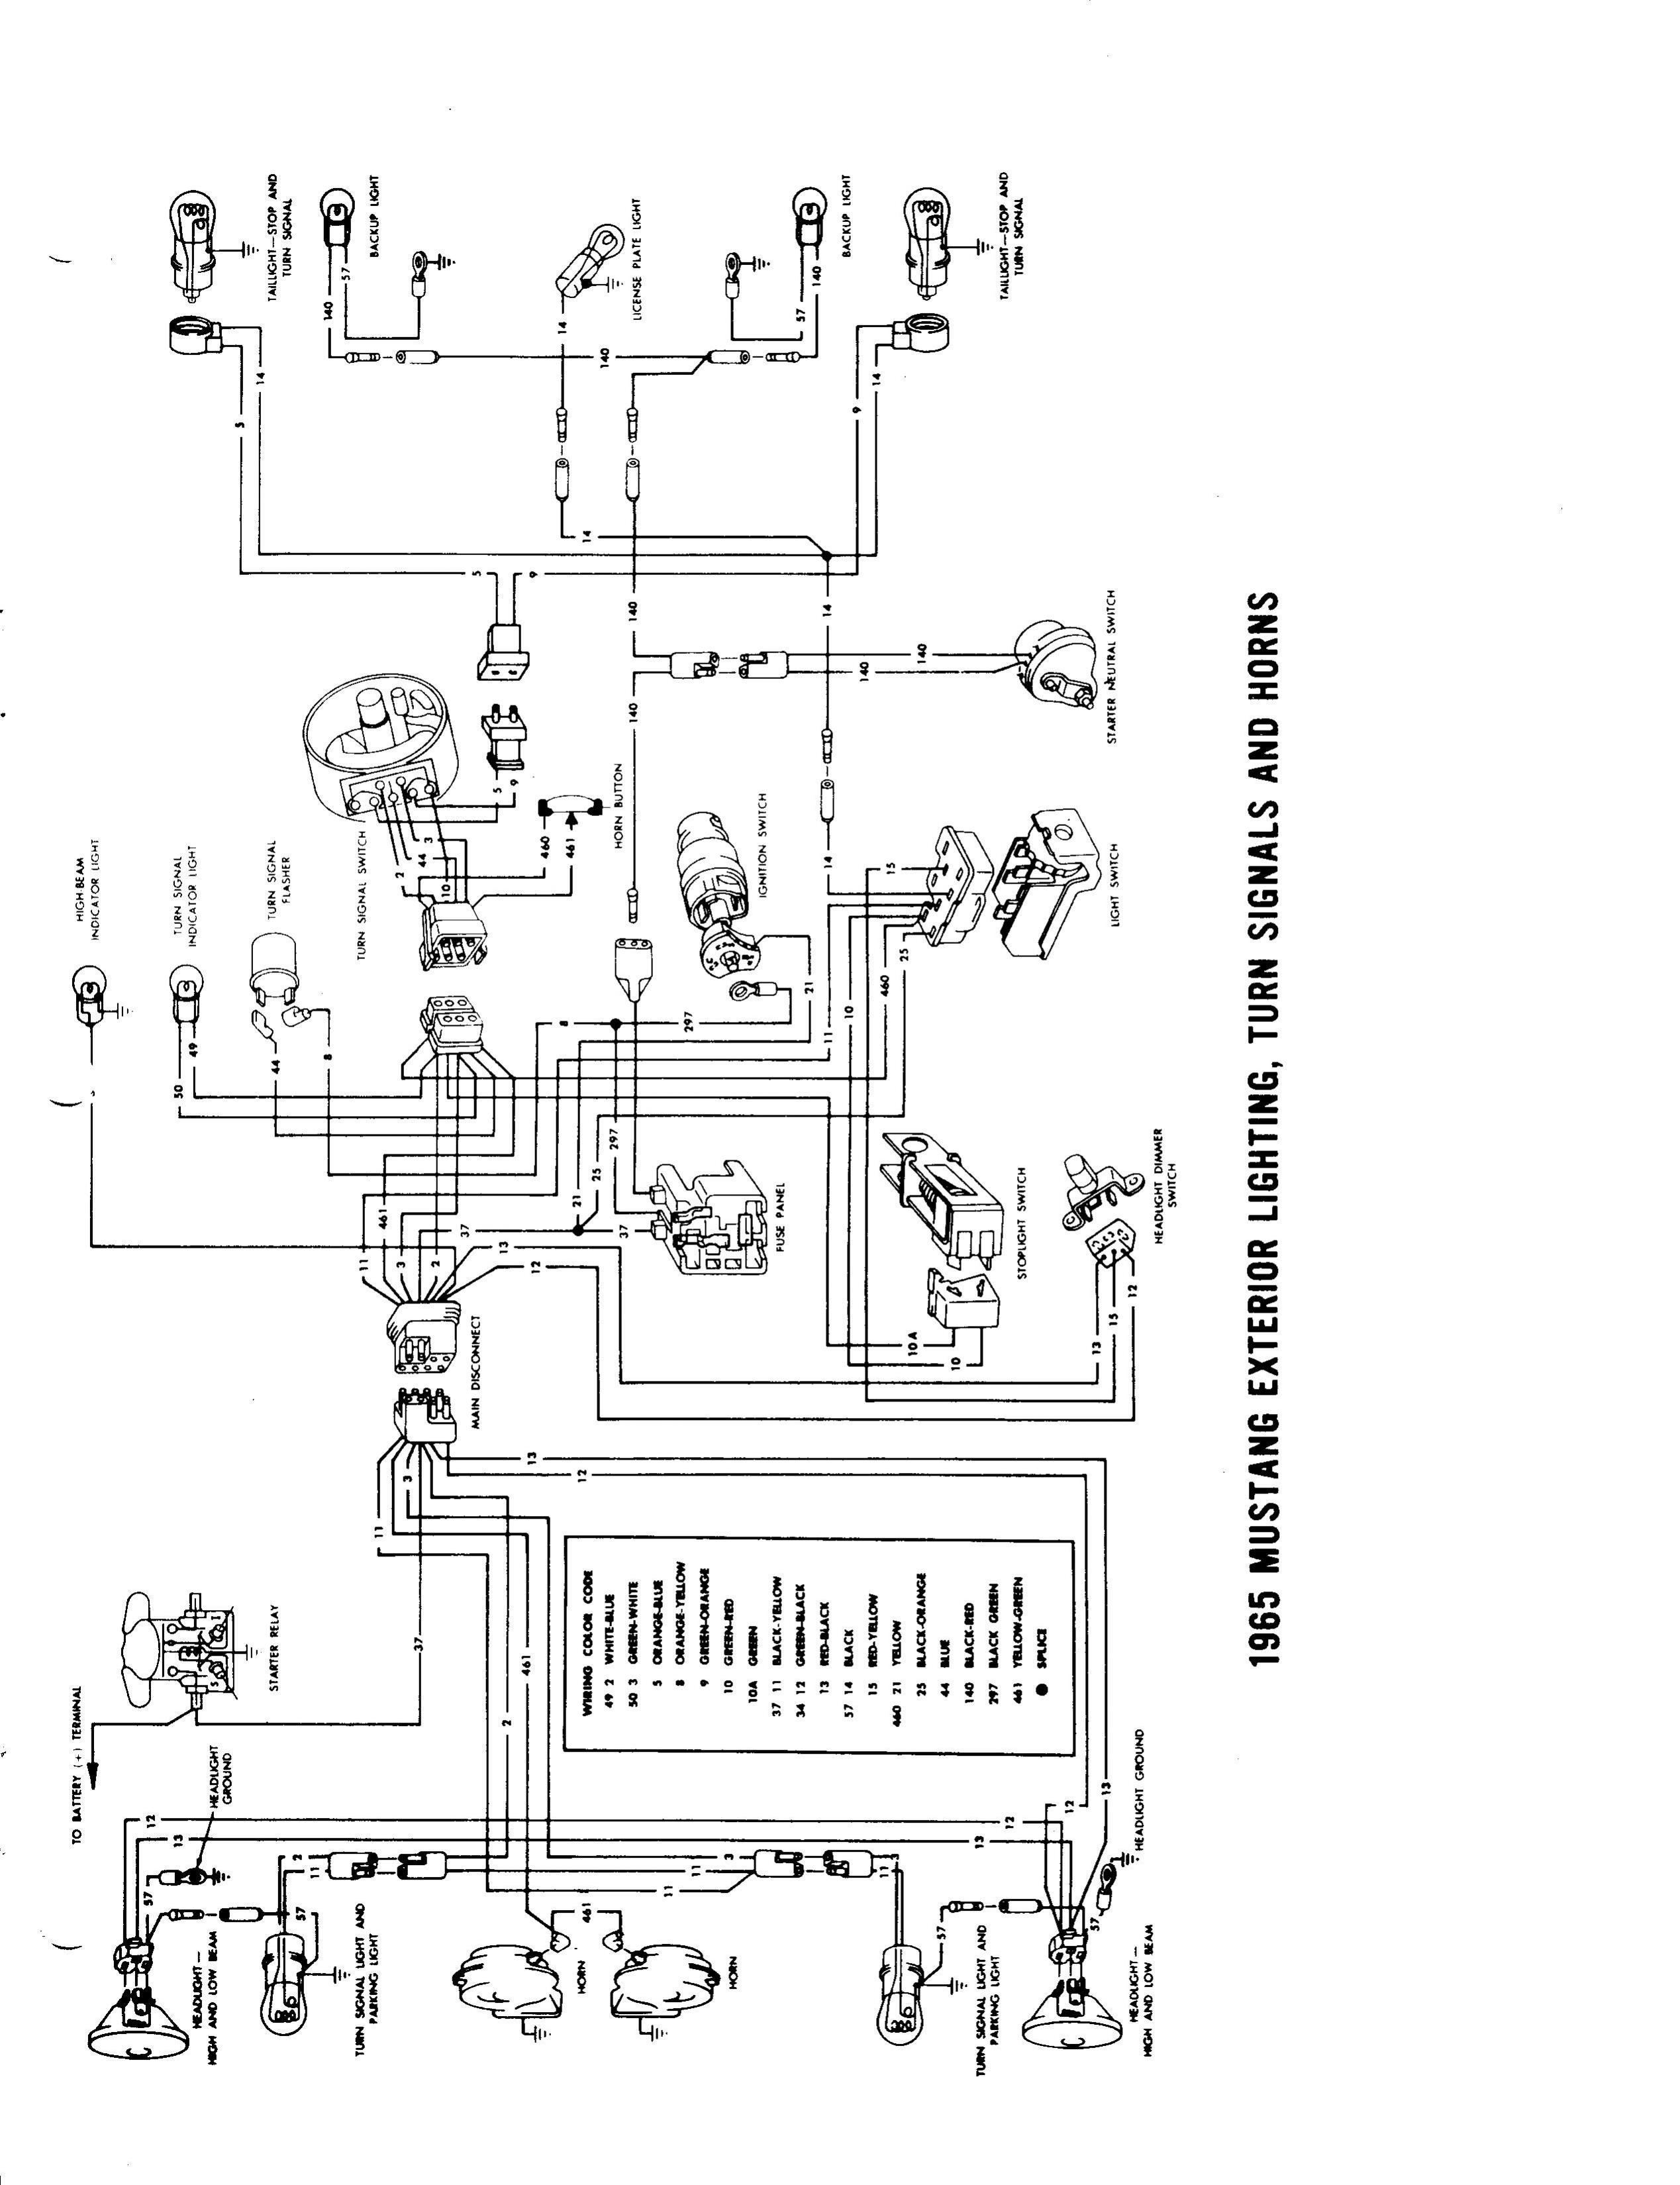 1964 U00bd-1965 Wiring Diagram Manual